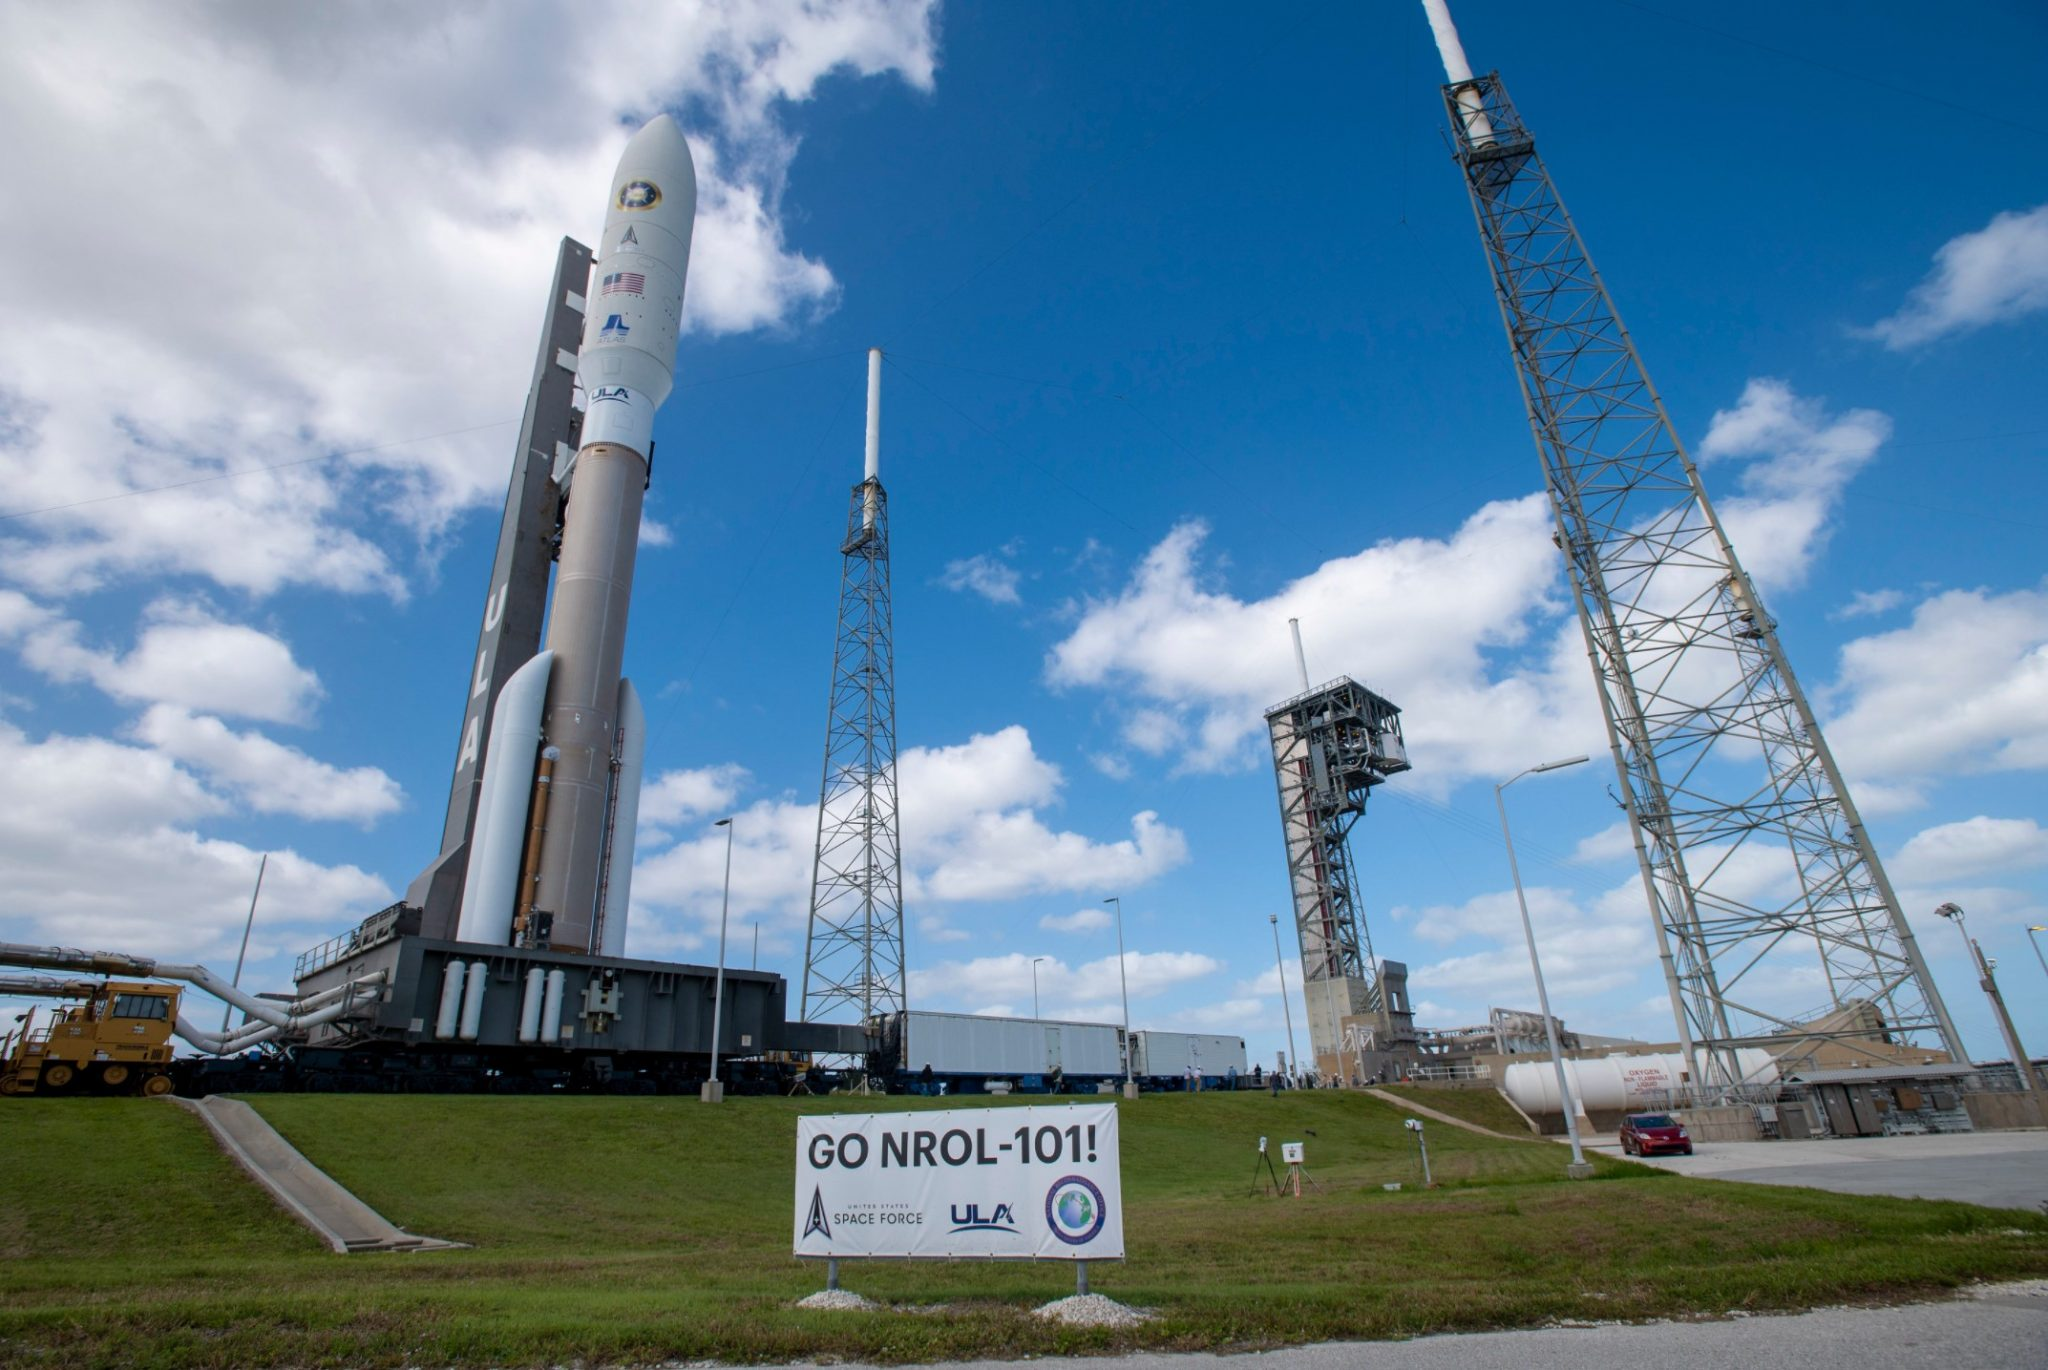 United Launch Alliance Successfully Launches National Security Space Mission